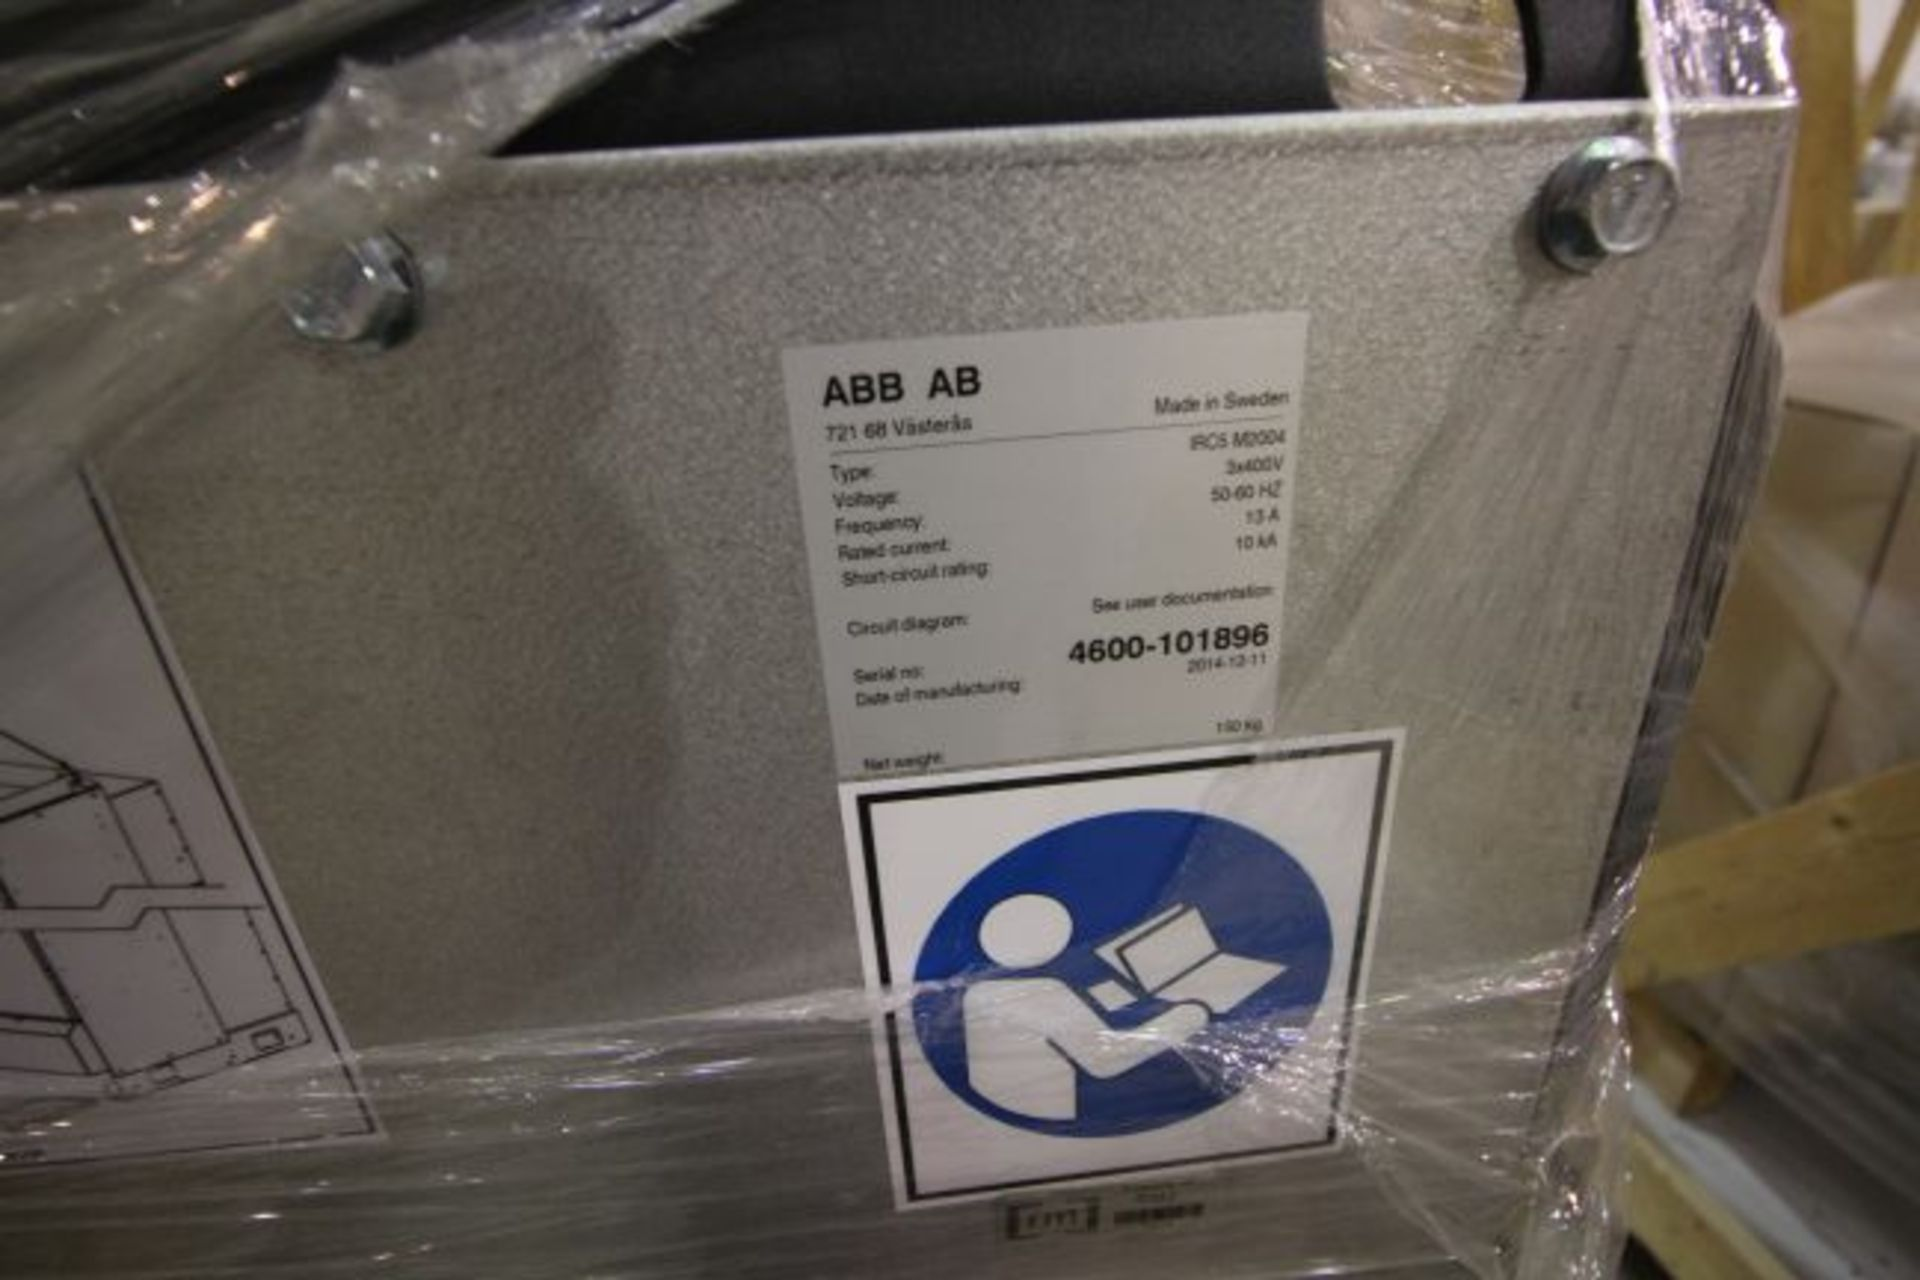 ABB ROBOT IRB 4600 2.55/40KG WITH IRC5 CONTROLS, YEAR 2015, 101896 TEACH PENDANT& CABLES - Image 11 of 11